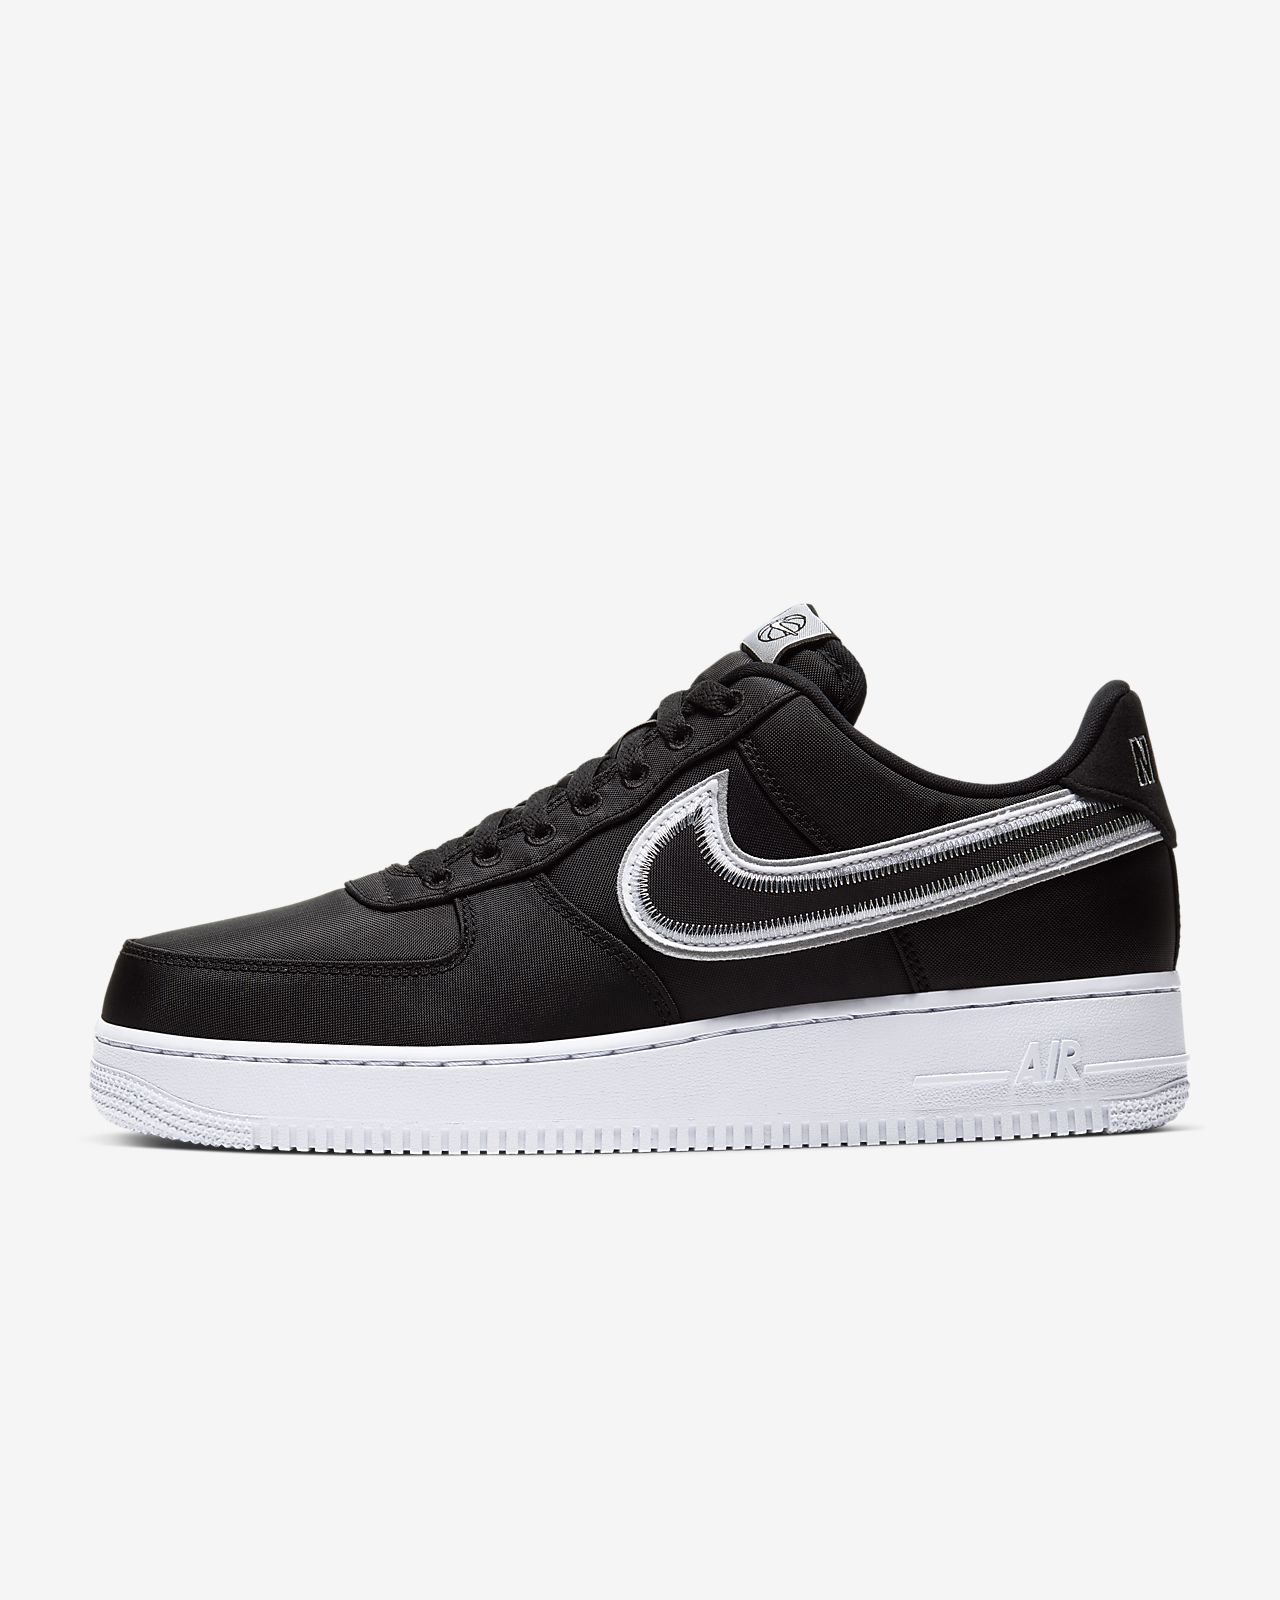 nike air force 1 black white suede